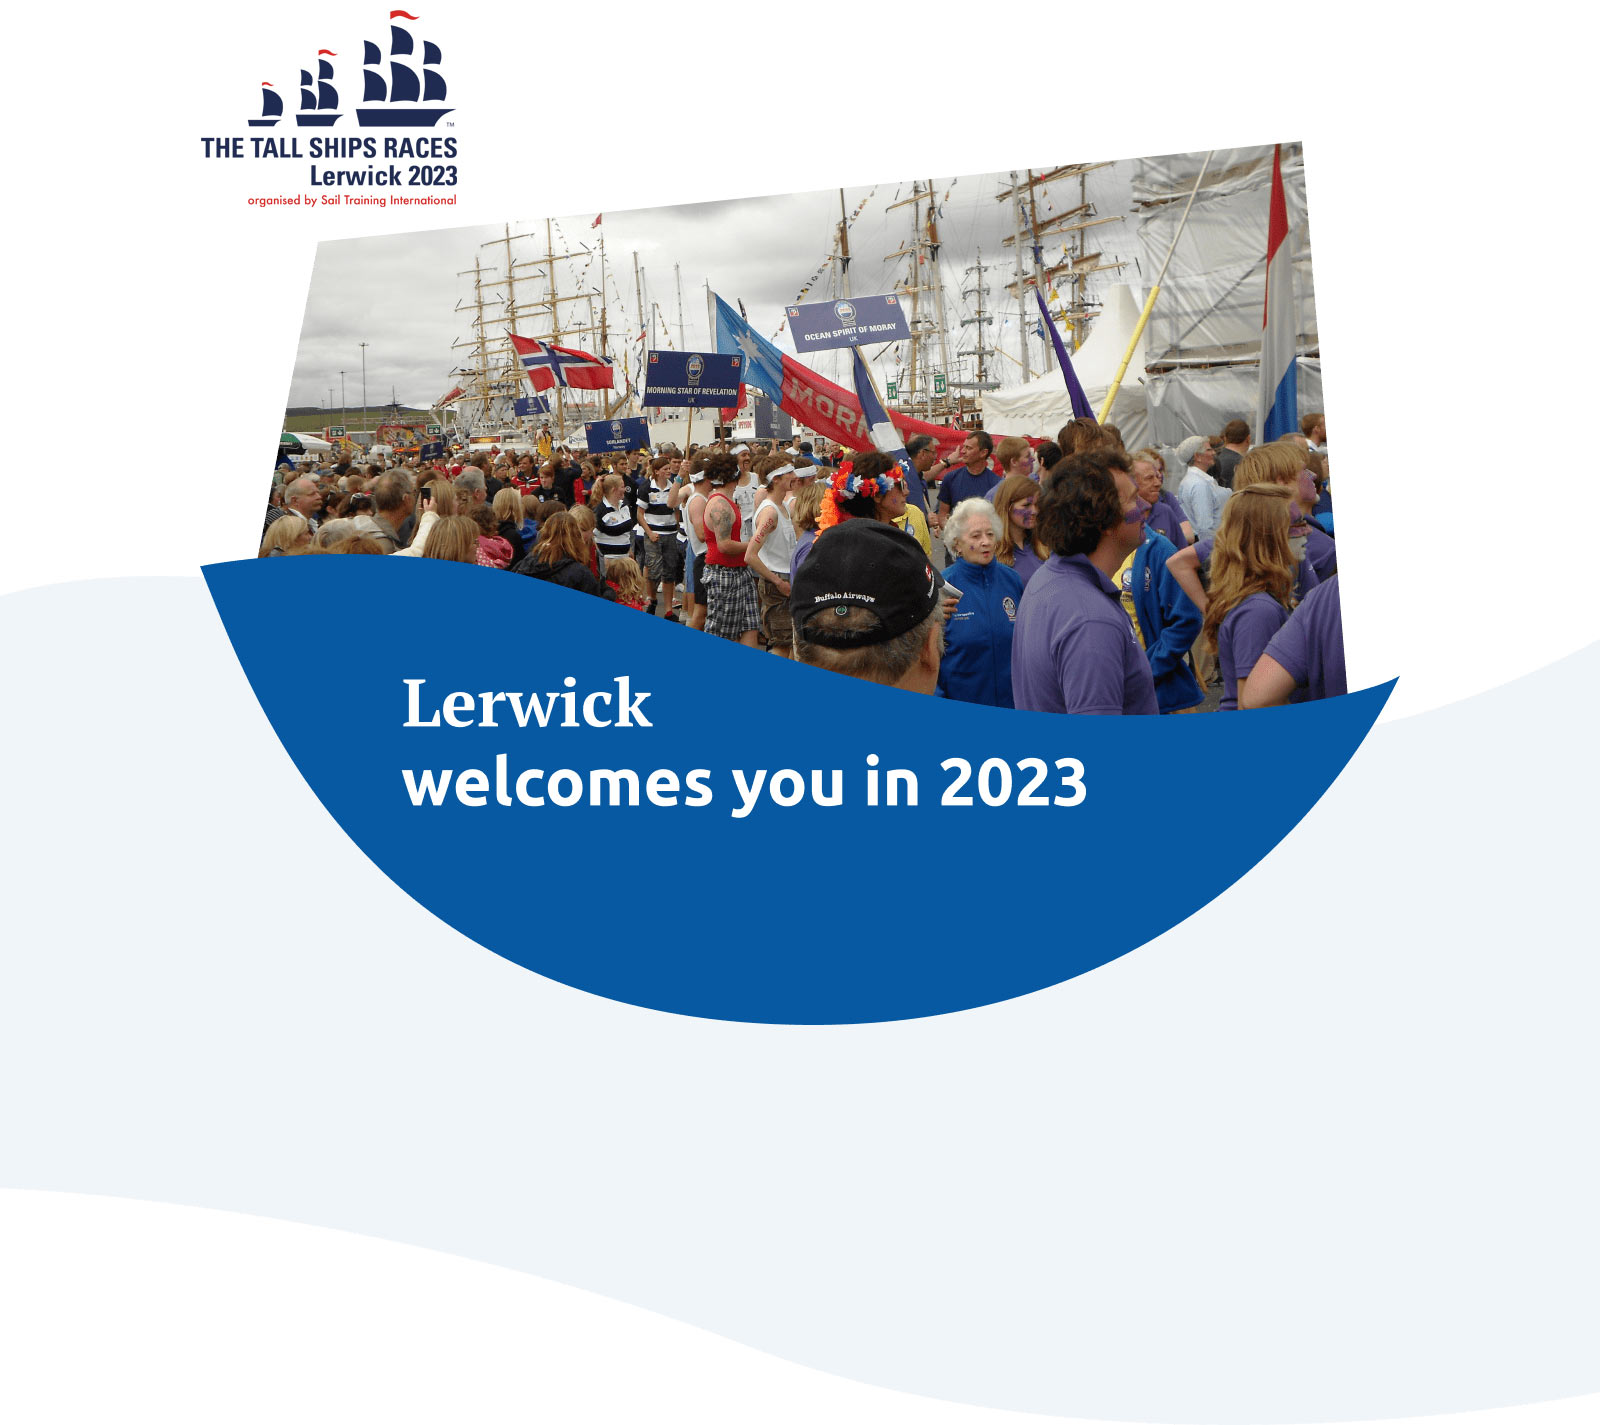 Lerwick welcomes you in 2023